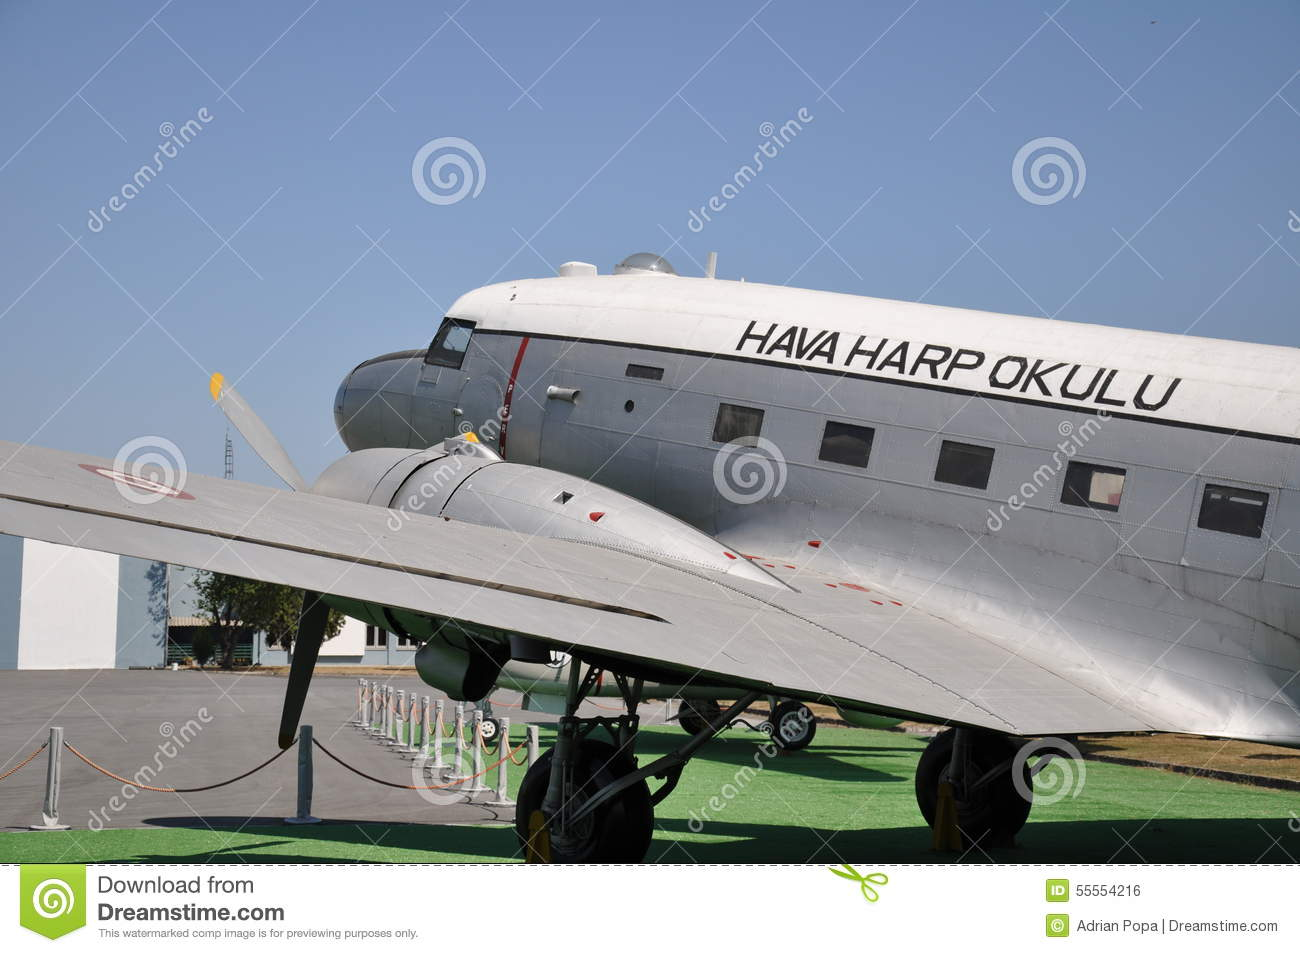 C-47 Skytrain Dakota